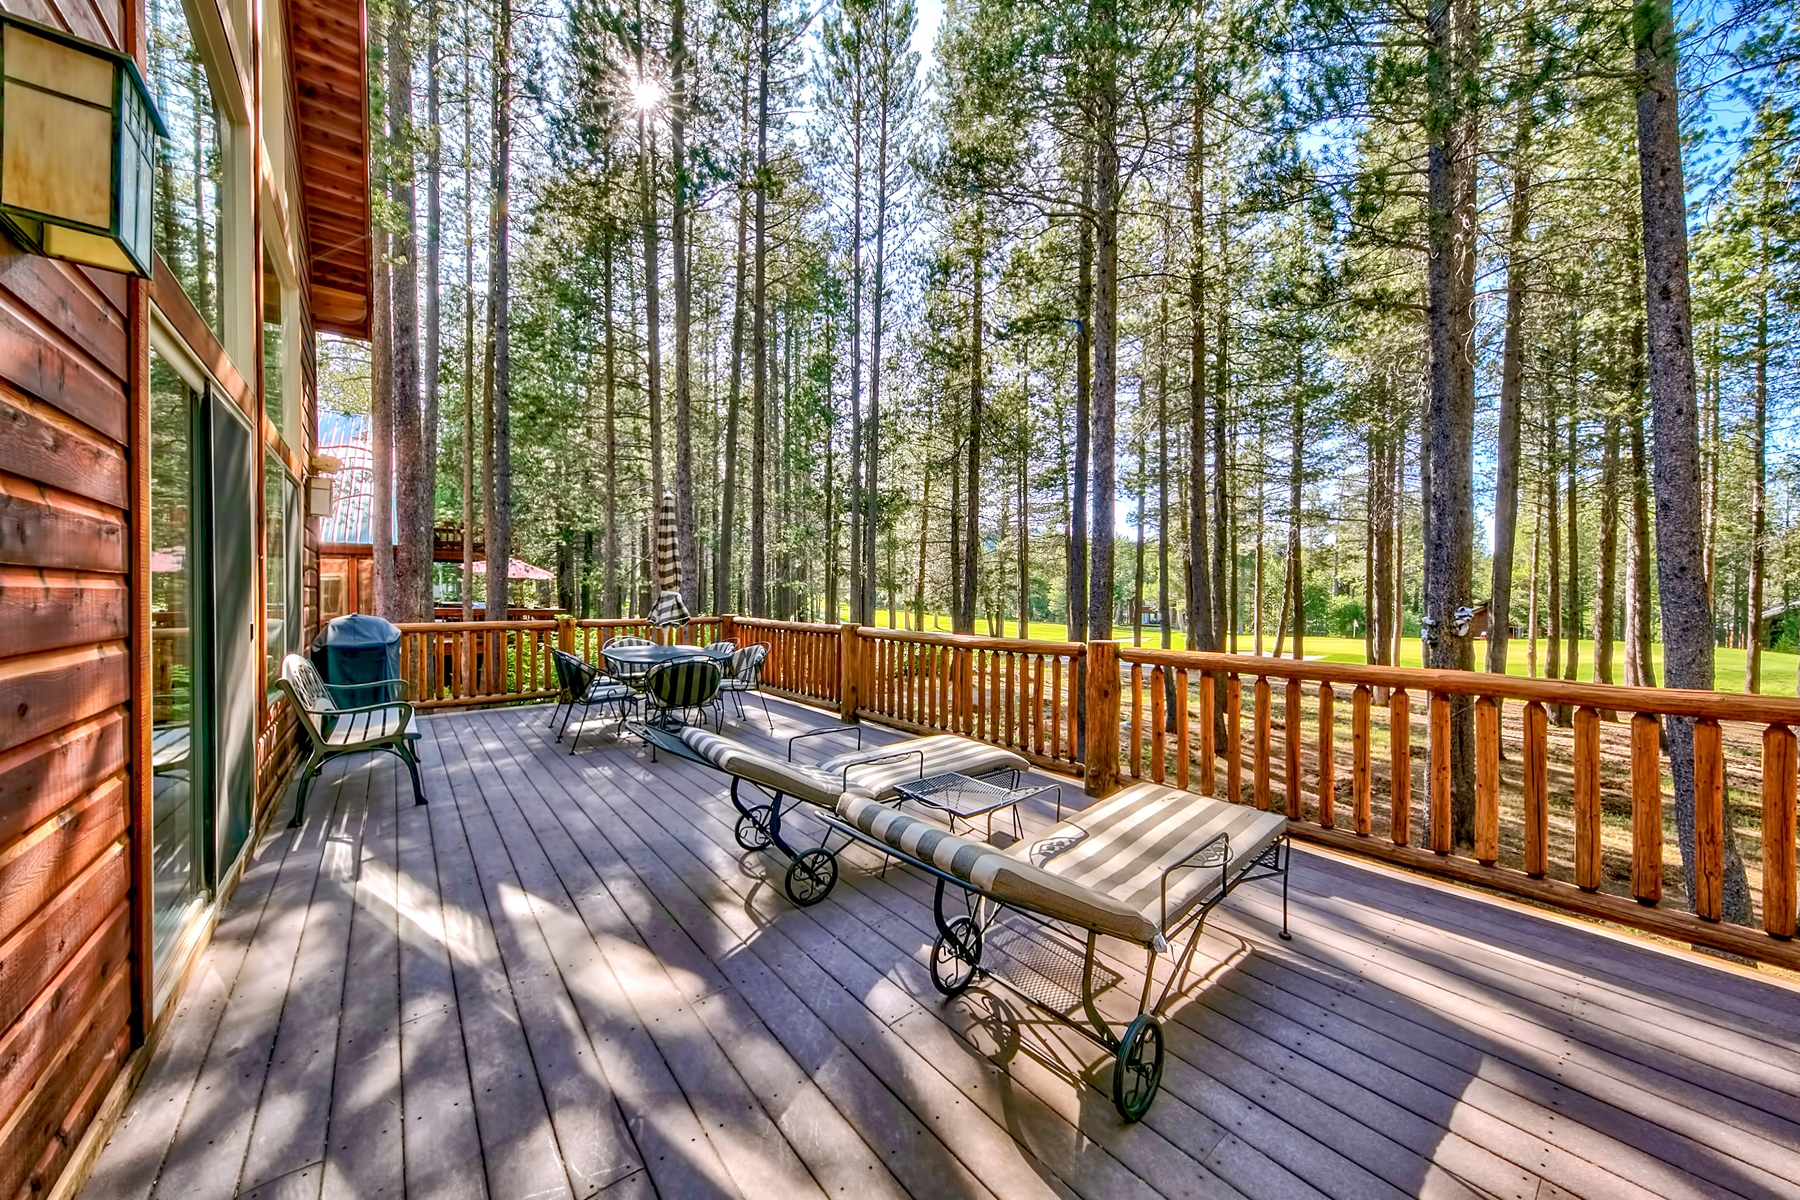 Additional photo for property listing at 14508 Davos Drive, Truckee, CA 14508 Davos Dr. Truckee, California 96161 United States